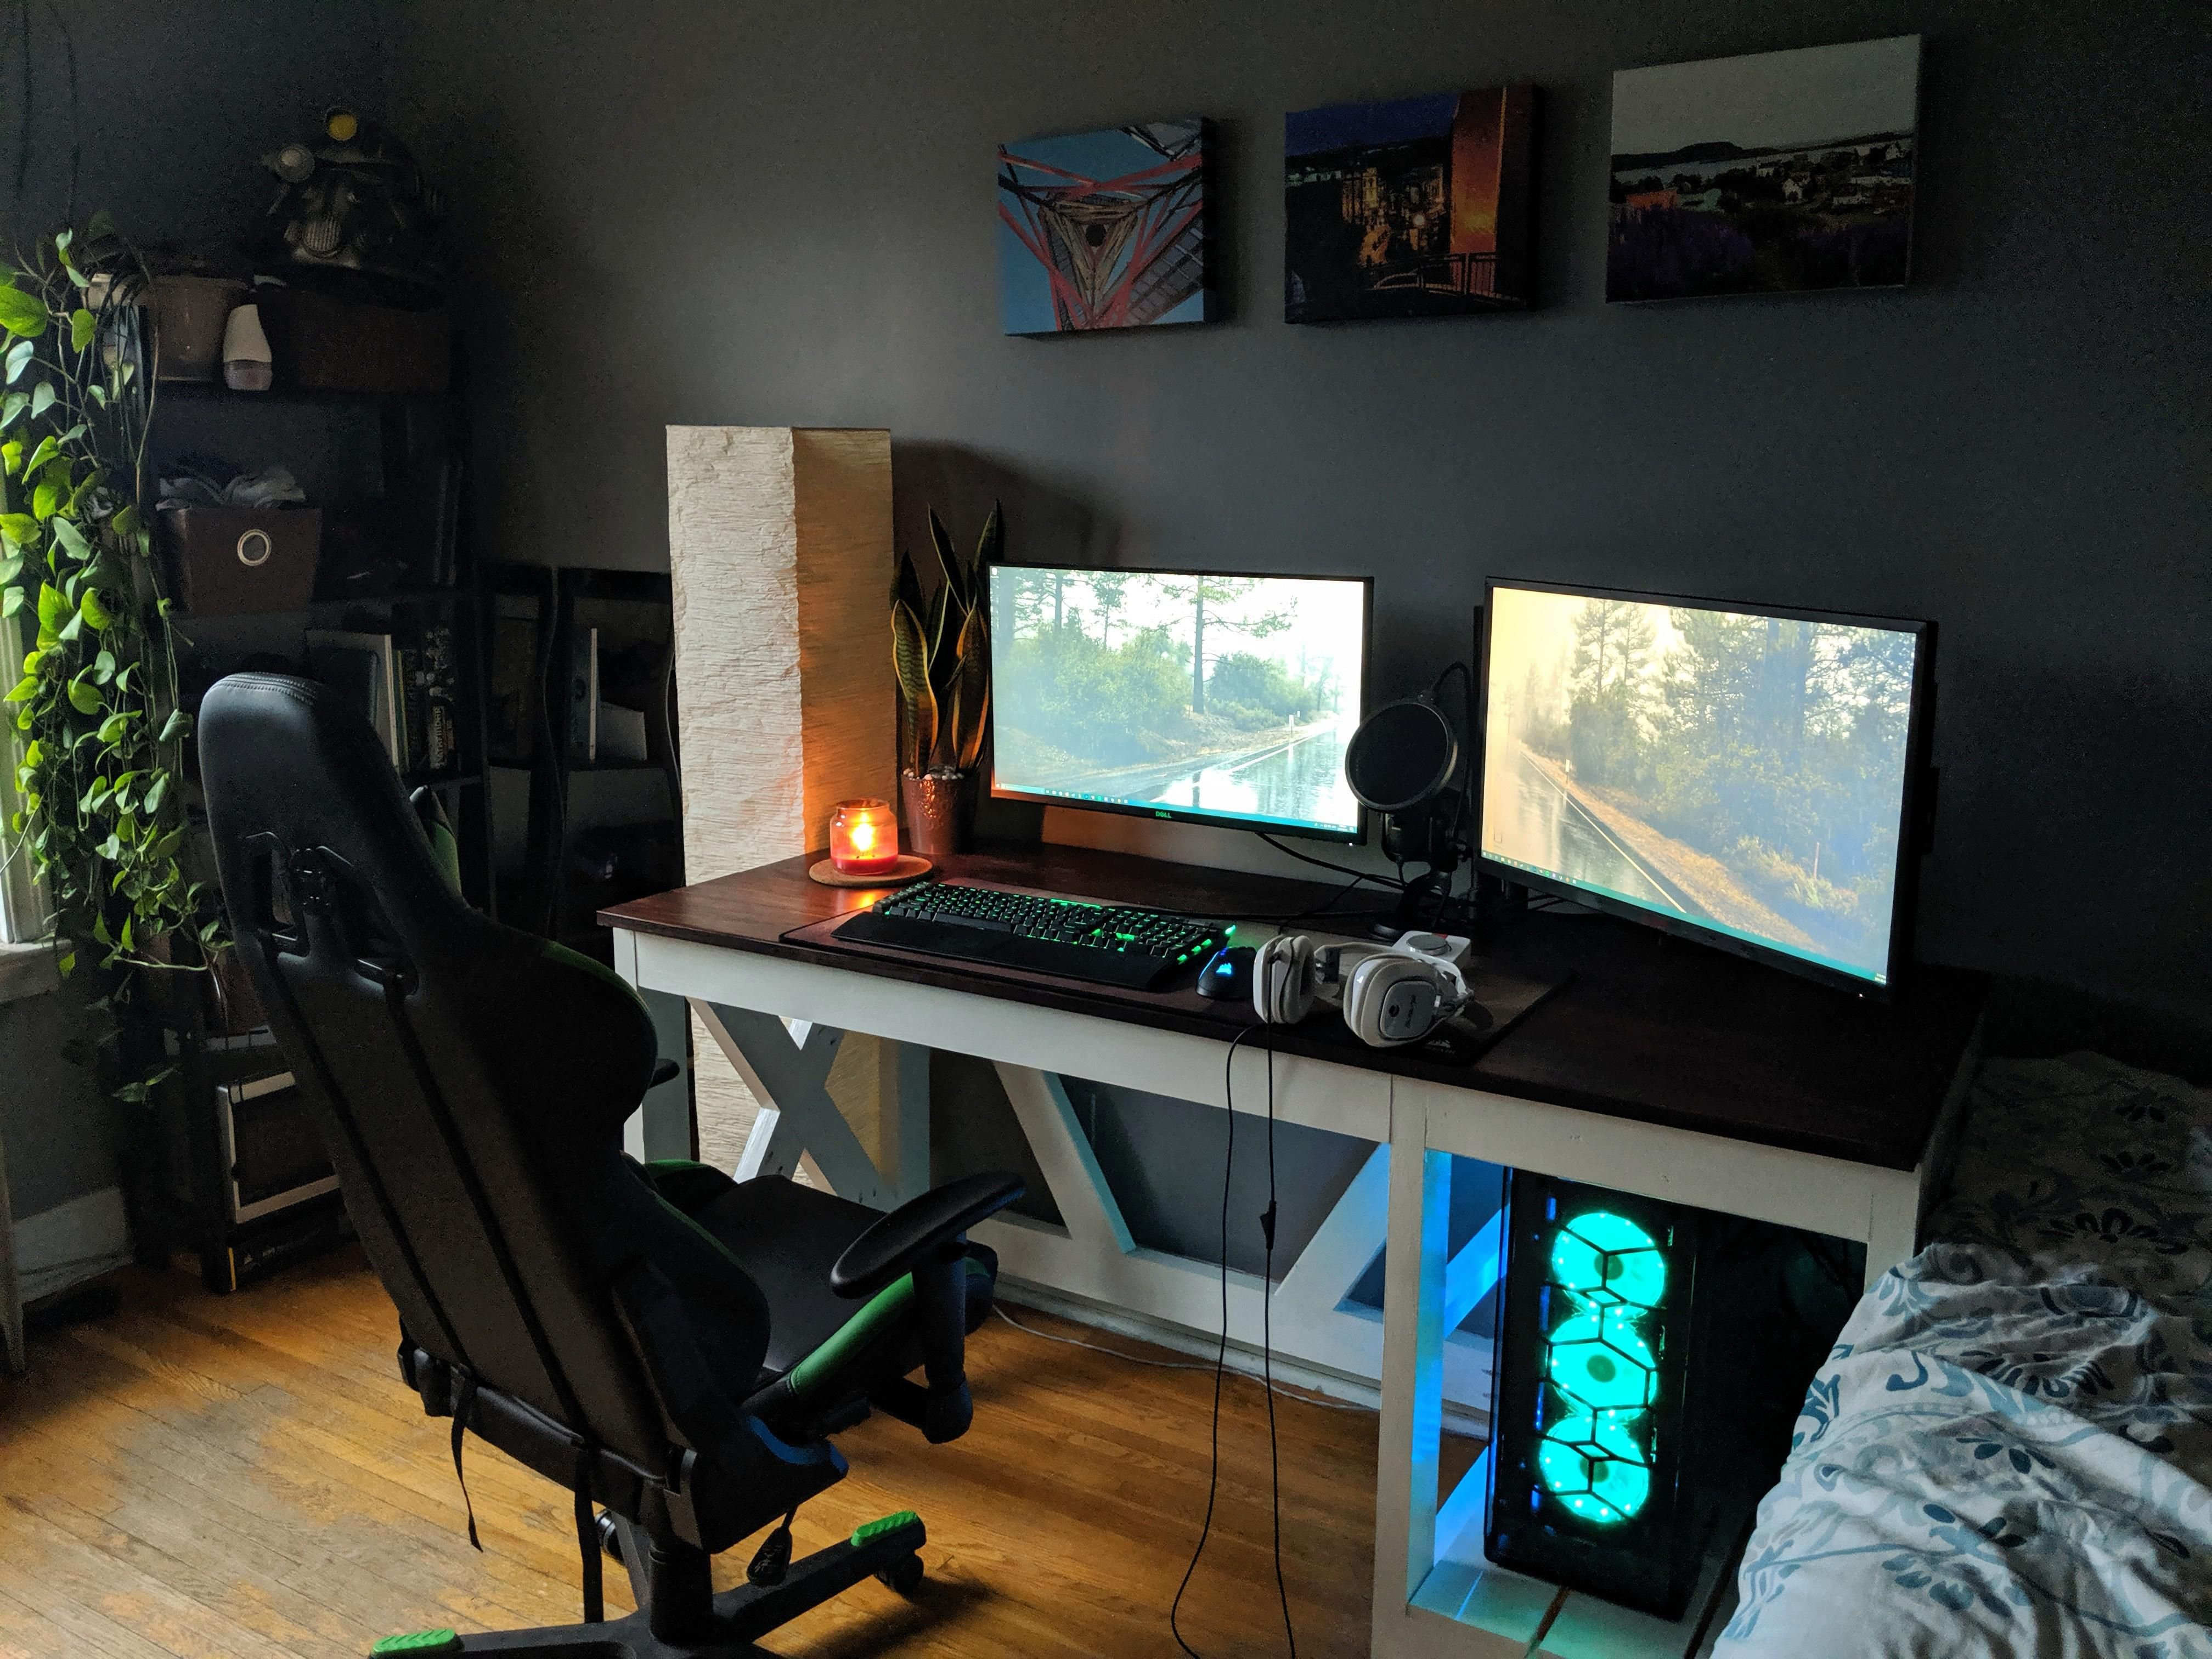 My Cozy Hiding Place For The End Of The Day Check Out Desigedecors Com To Get More Inspiration Interi Best Computer Chairs Home Office Setup Gaming Desk Chair